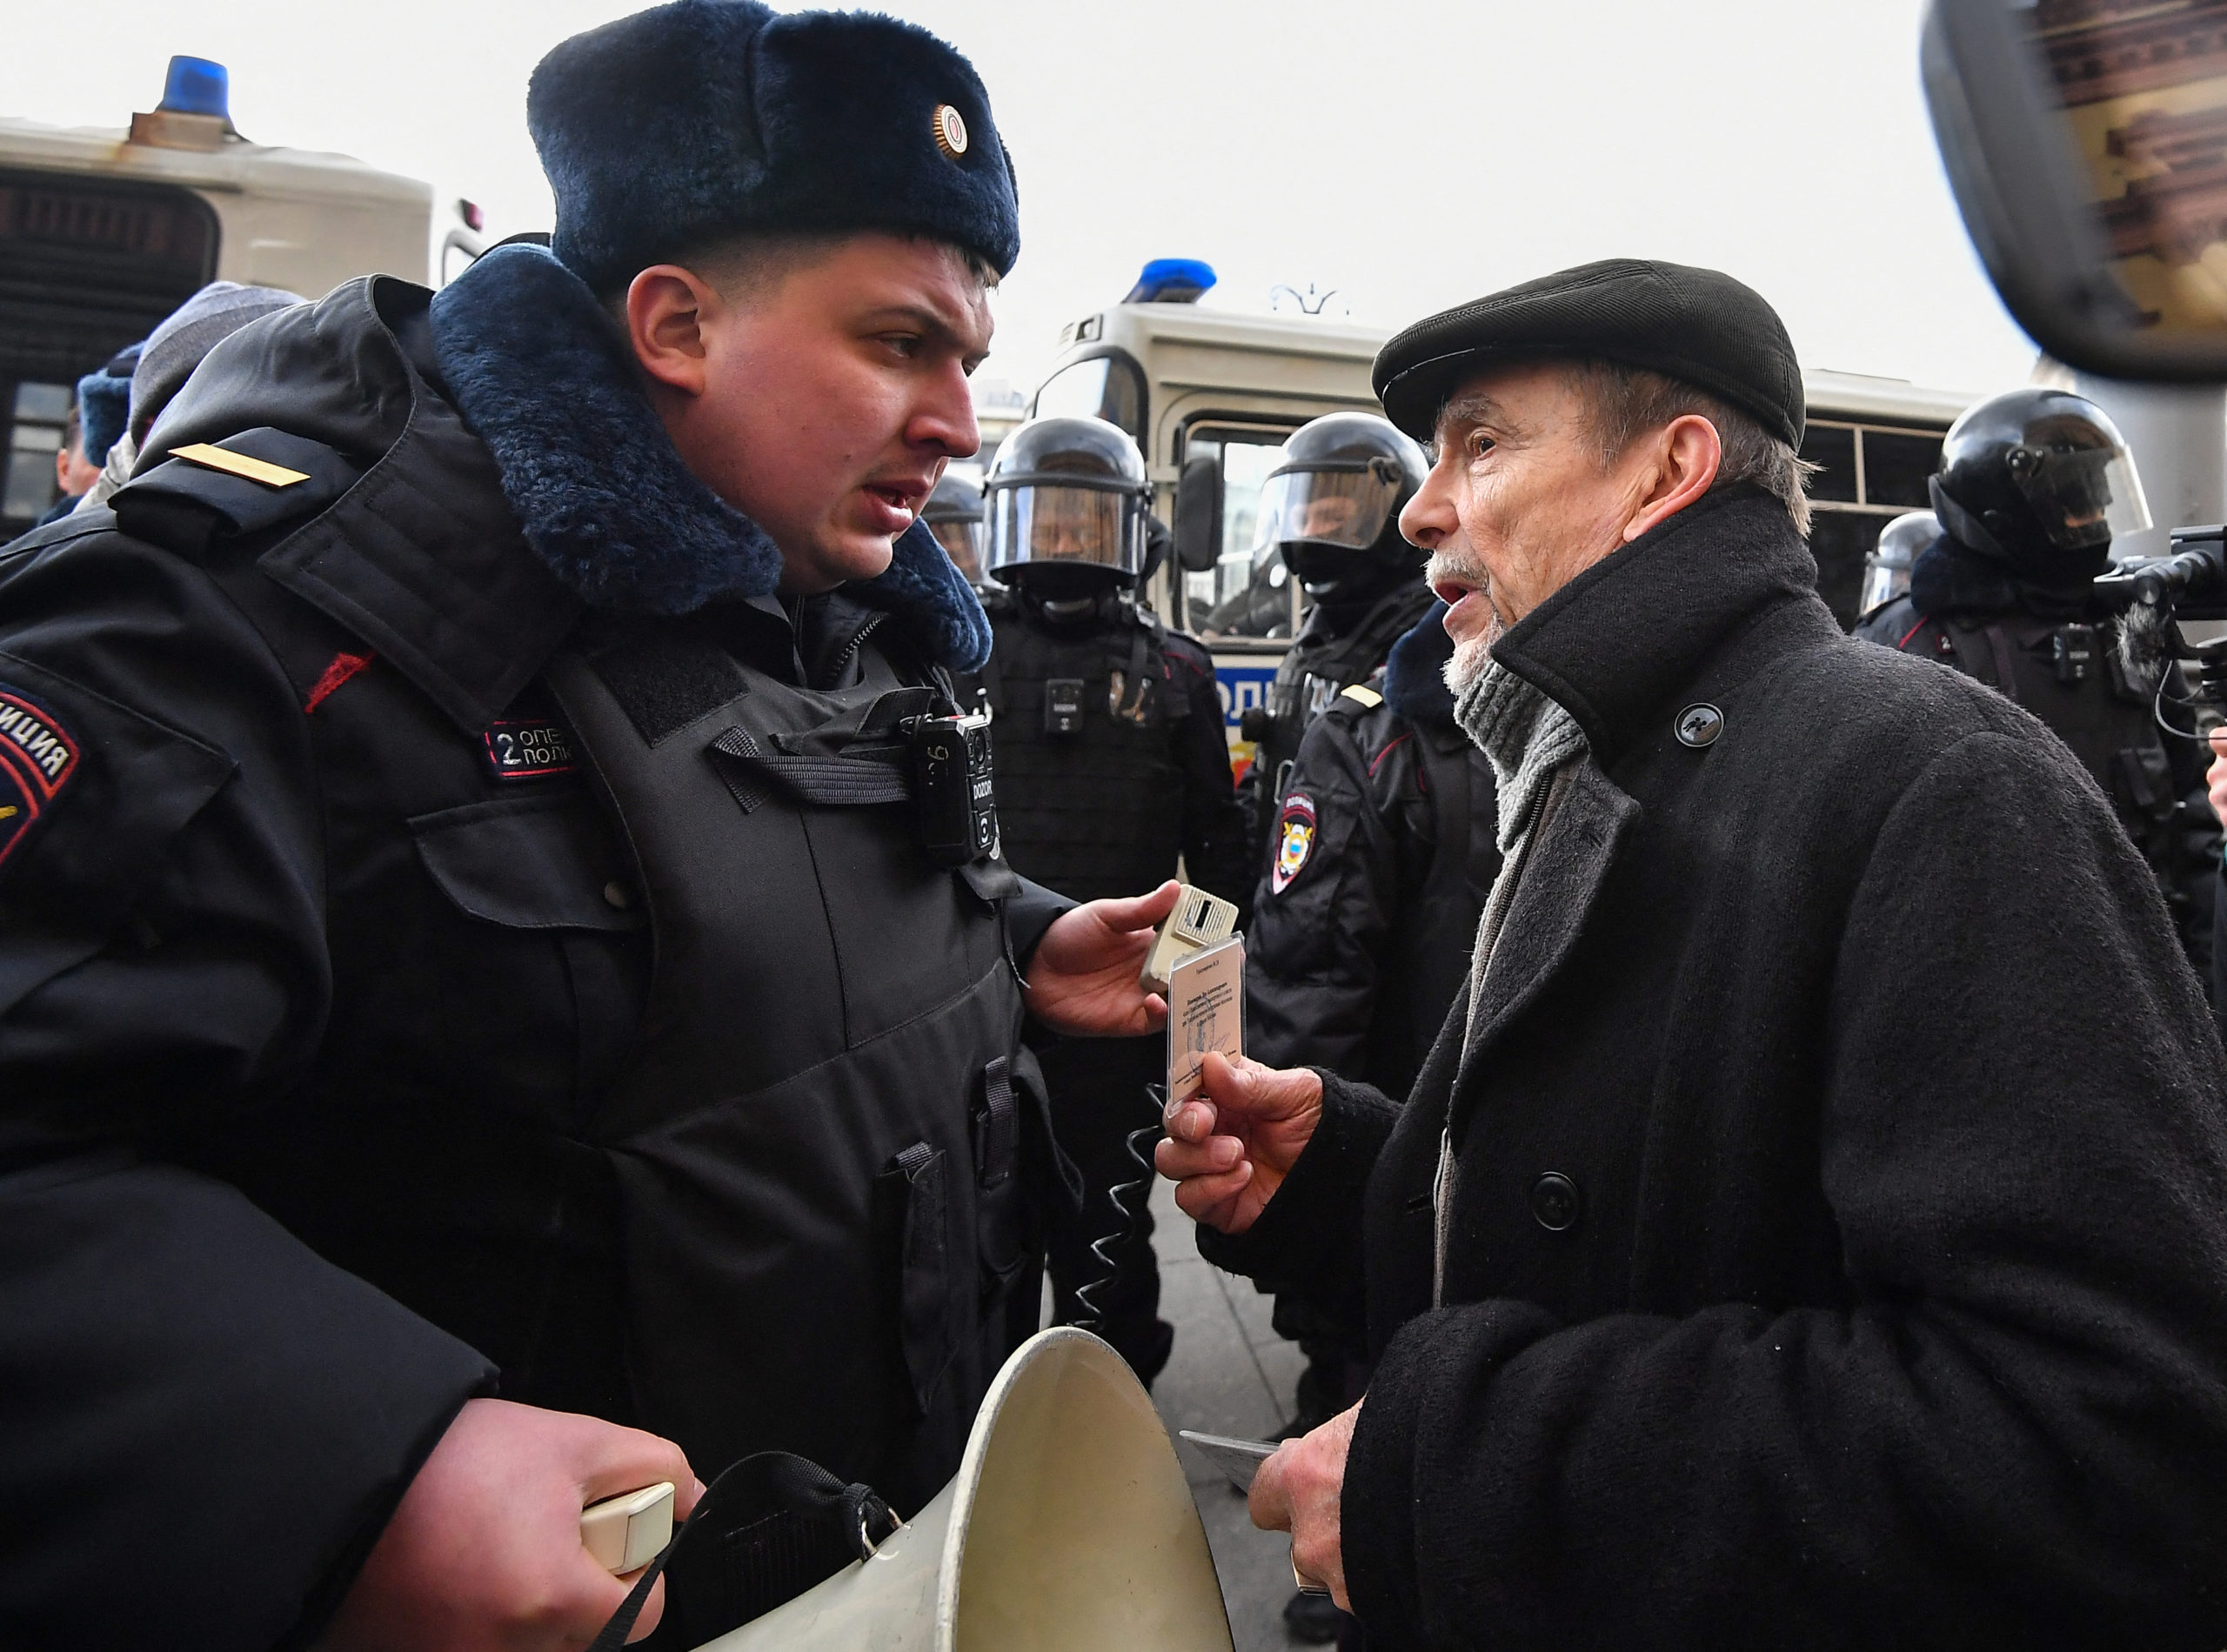 How Russia's 'Foreign Agents' Law Silences Dissent